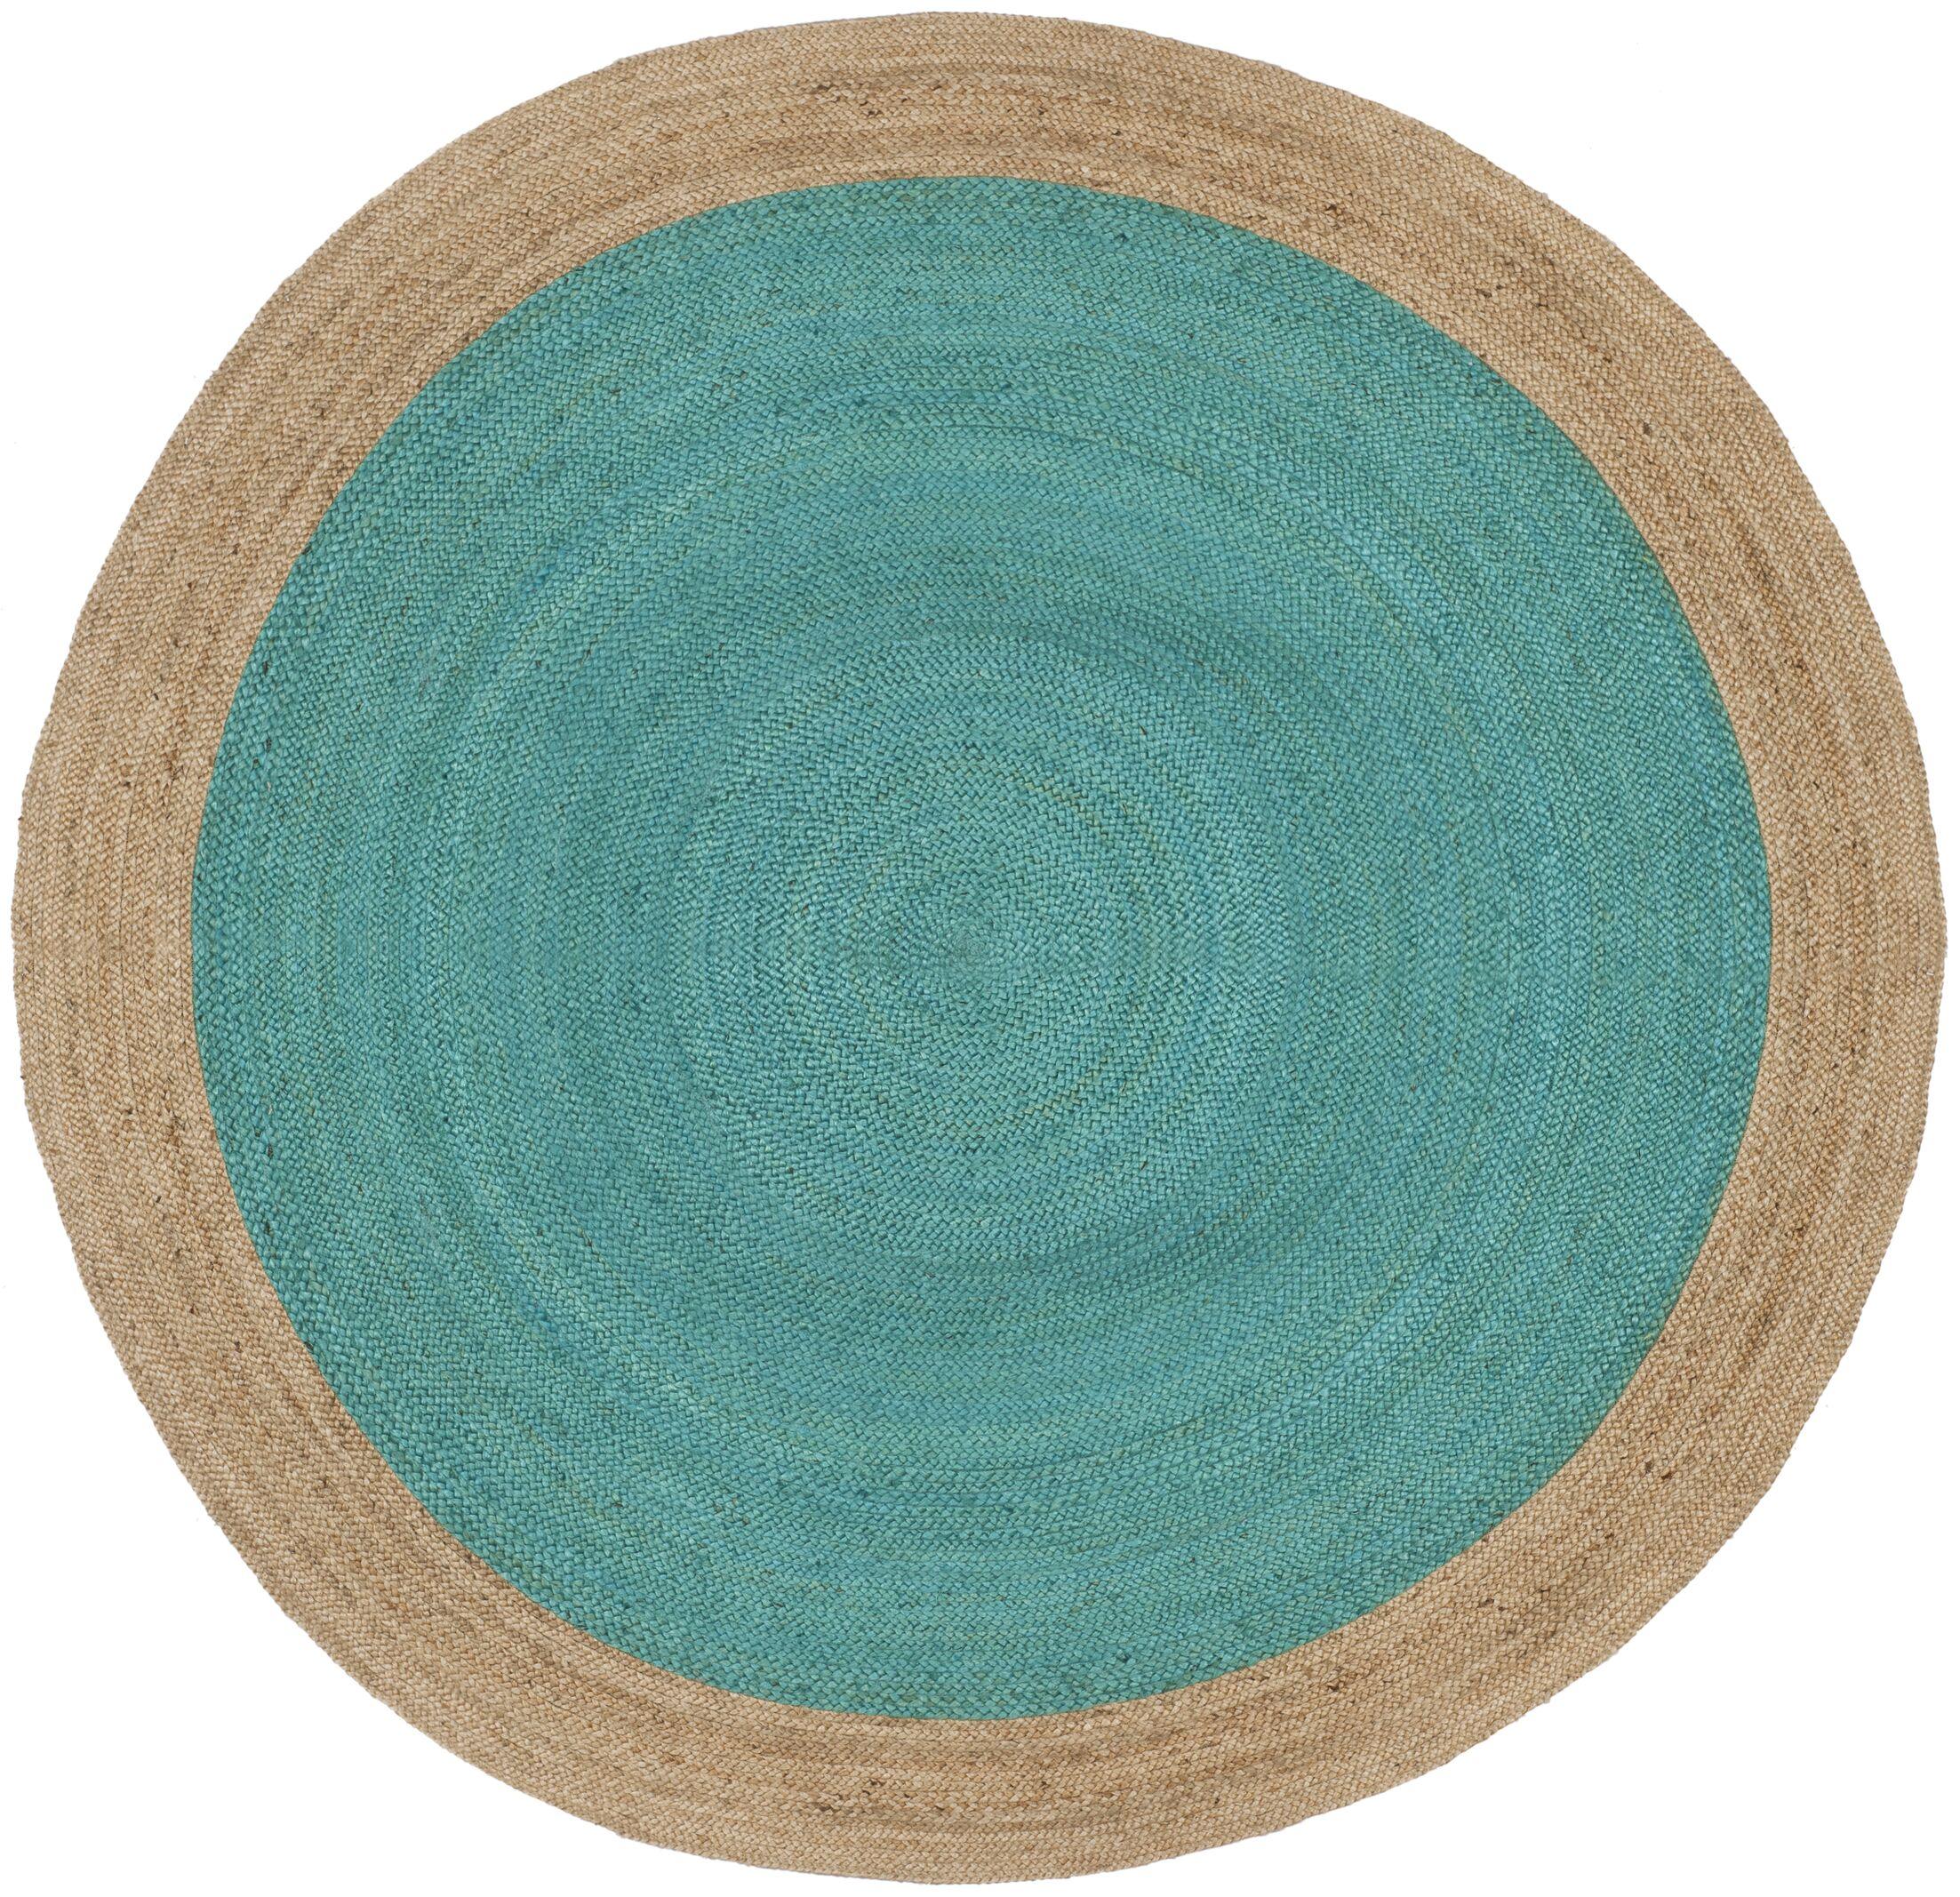 Cayla Fiber Hand-Woven Teal/Natural Area Rug Rug Size: Round 8'